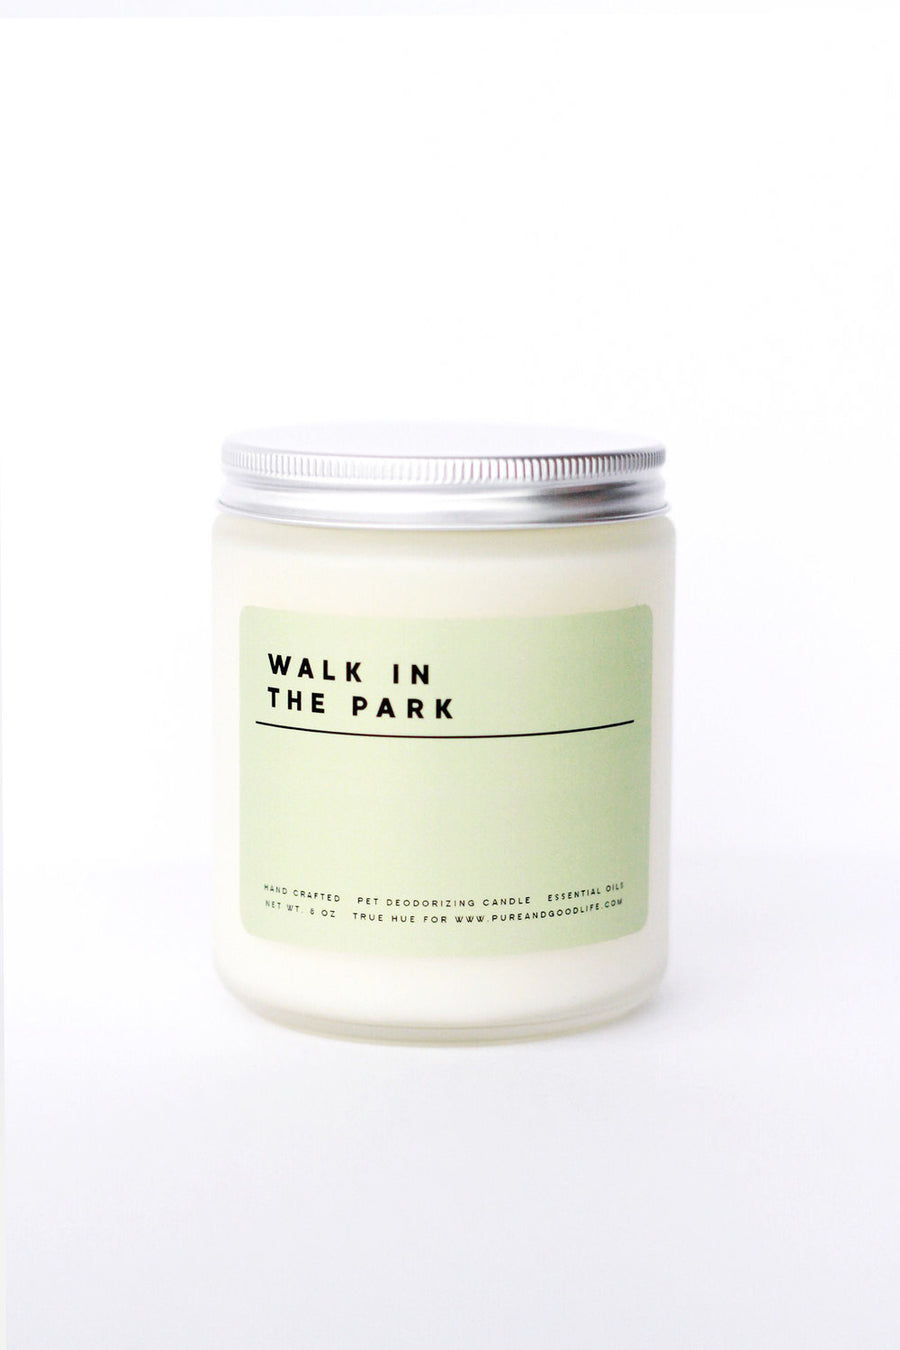 Pure + Good - Walk In The Park: Lemongrass + Peppermint 8 oz Soy Wax Candle